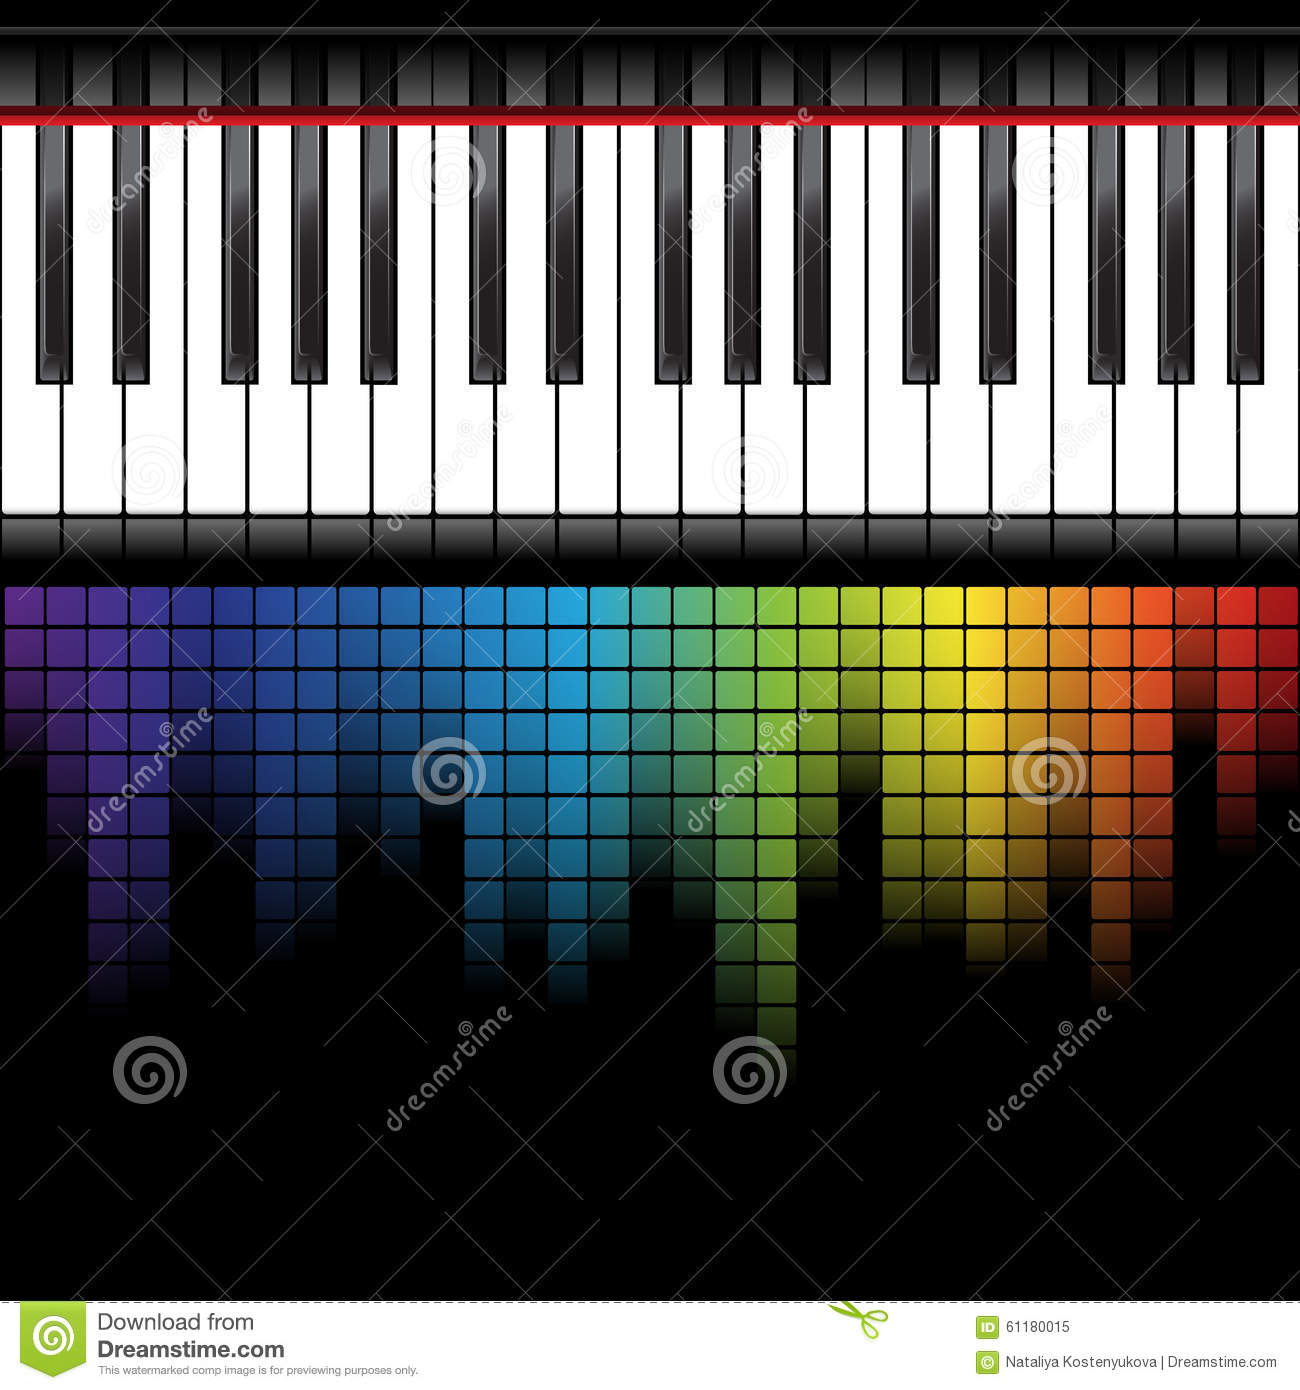 Black piano template stock vector. Illustration of keyboard - 61180015